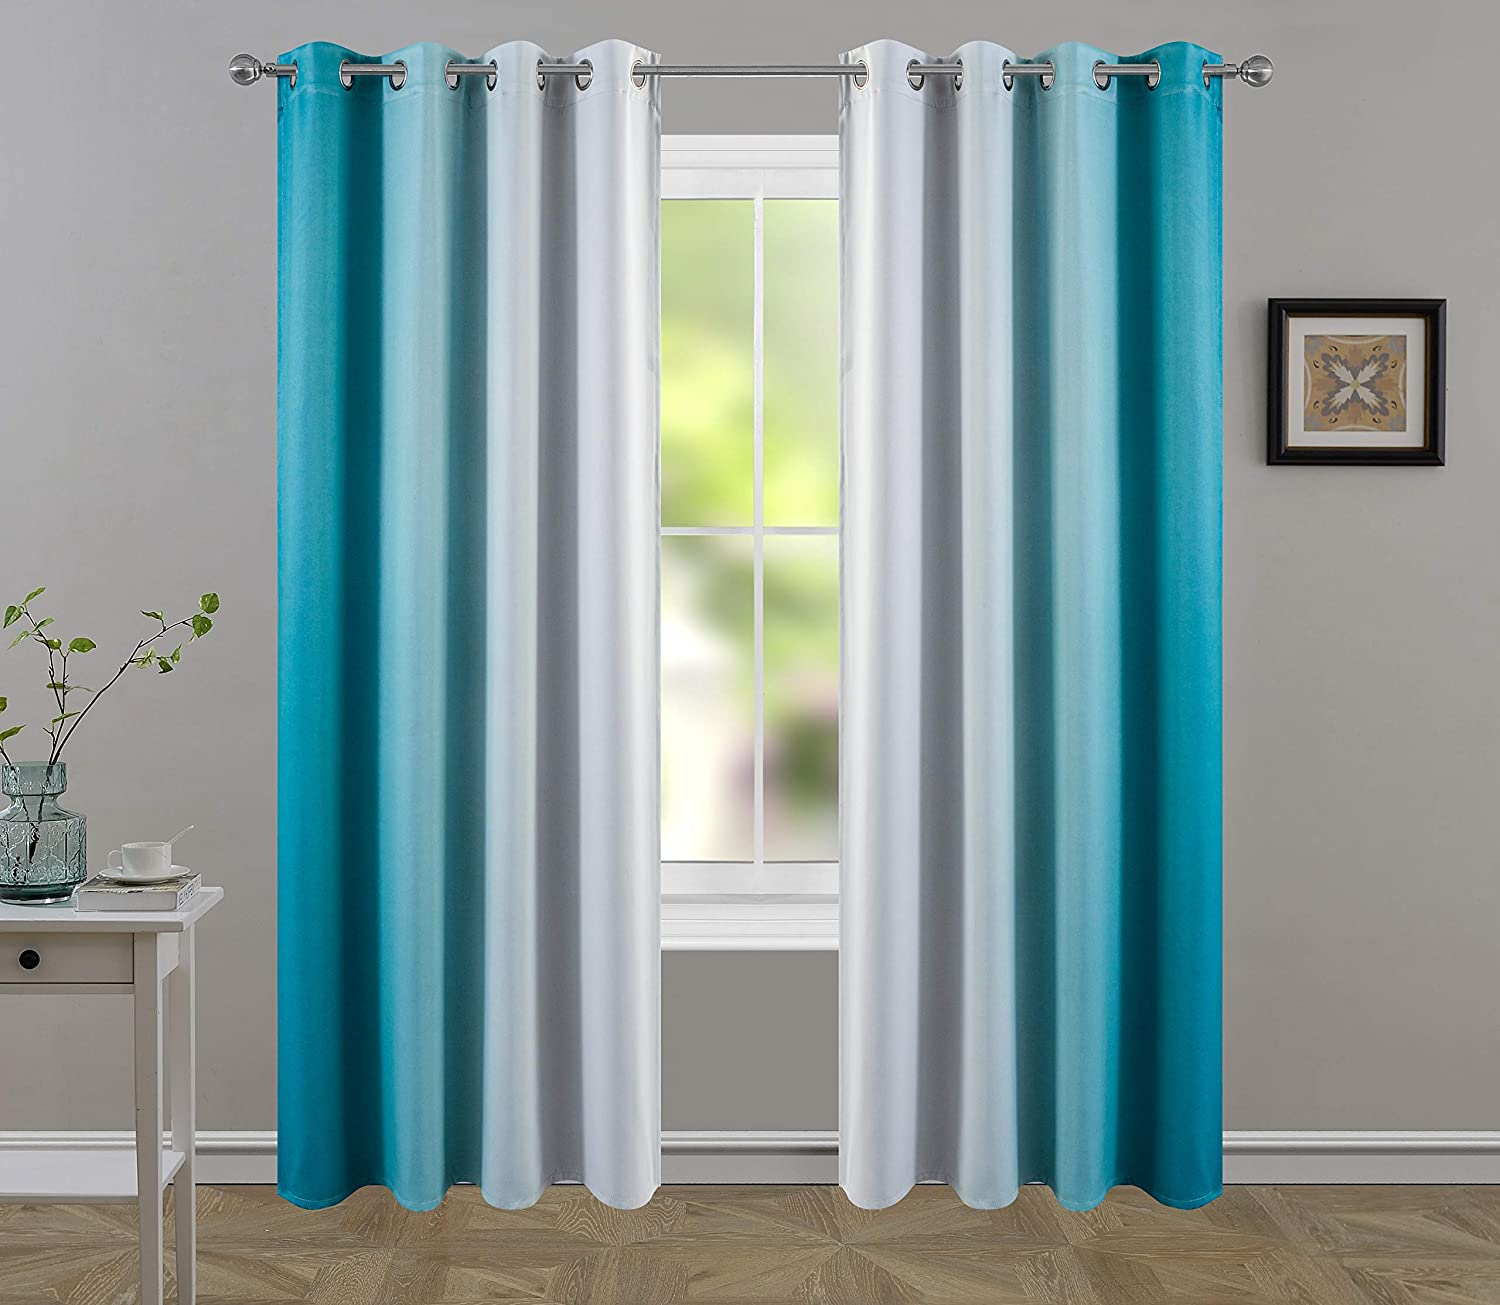 Hhmy Blackout Light Blocking Curtains, Light Blue Curtains Living Room